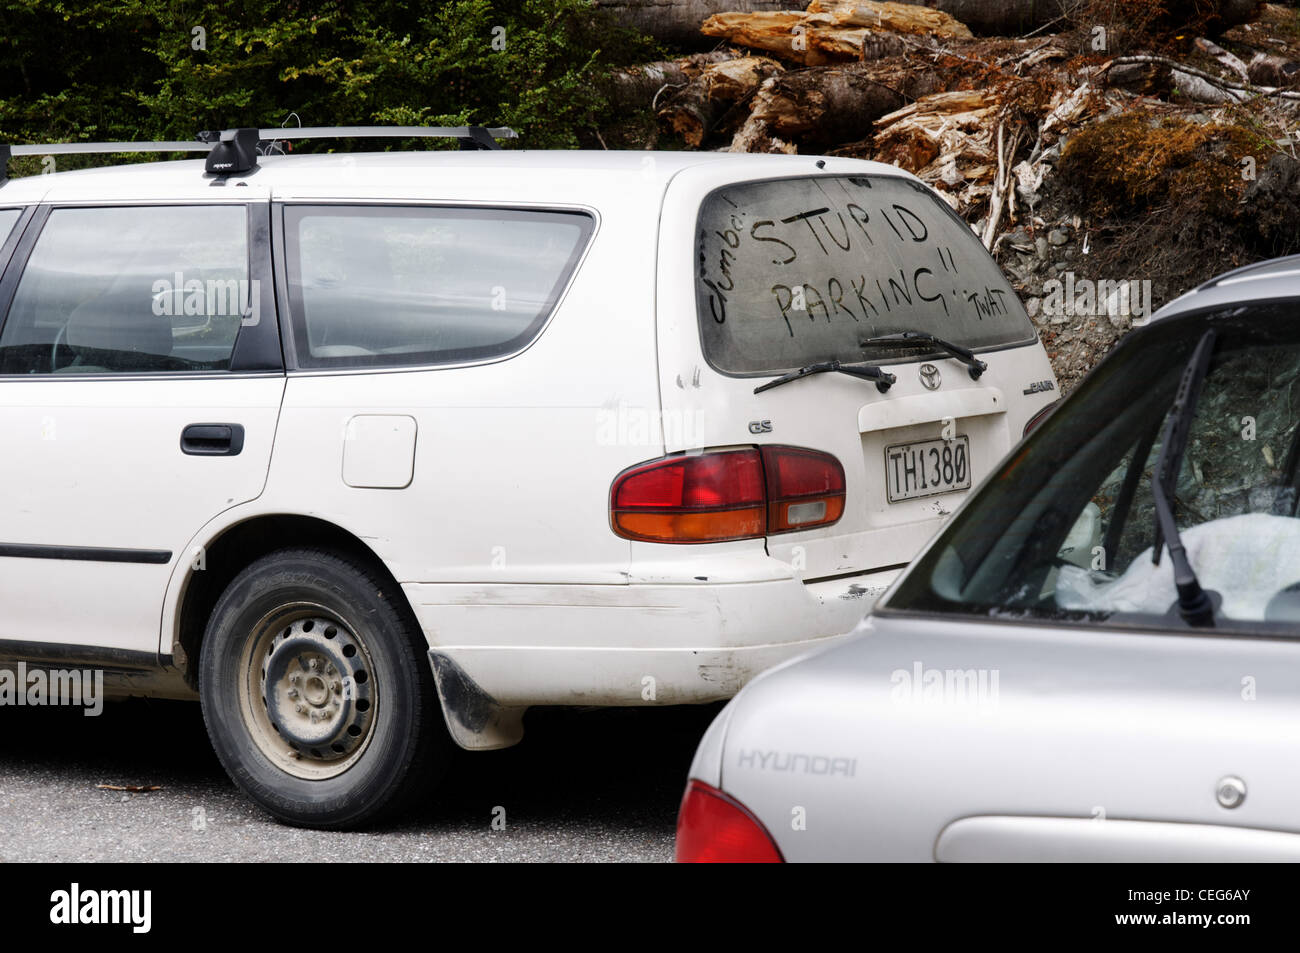 A badly parked car with the words 'dumbo' 'twat' and 'stupid parking' written on the dirty - Stock Image